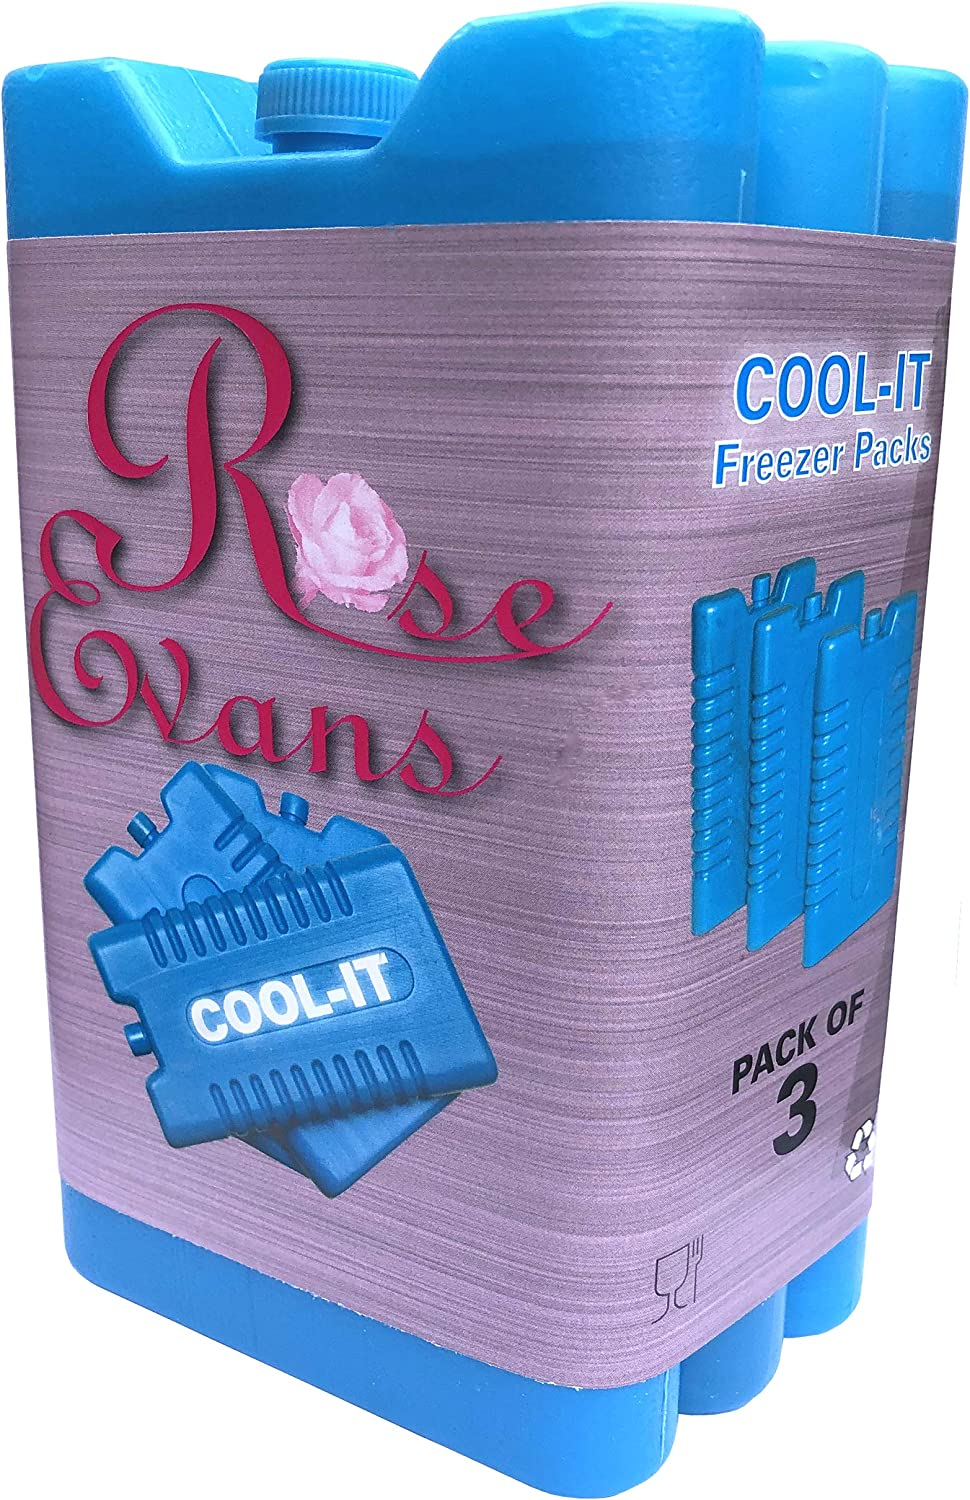 New Freezer Blocks - Suitable For Cooler Boxes & Bags - Cools & Keeps Food Fresh - In Packs of 3/6 by Rose Evans: Amazon.es: Deportes y aire libre